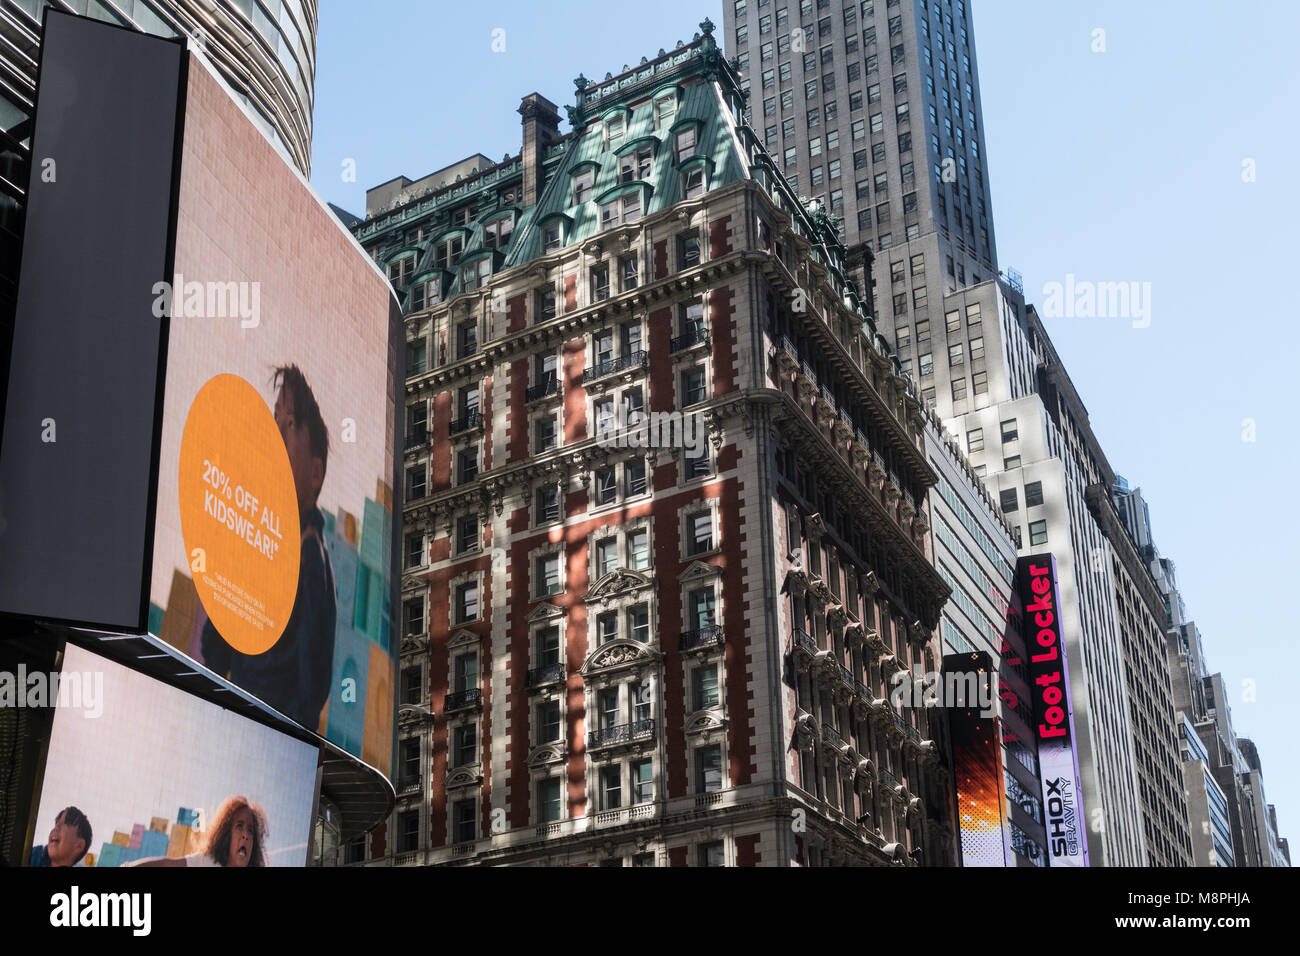 Contrasting Architecture in Times Square, NYC, USA Stock Photo